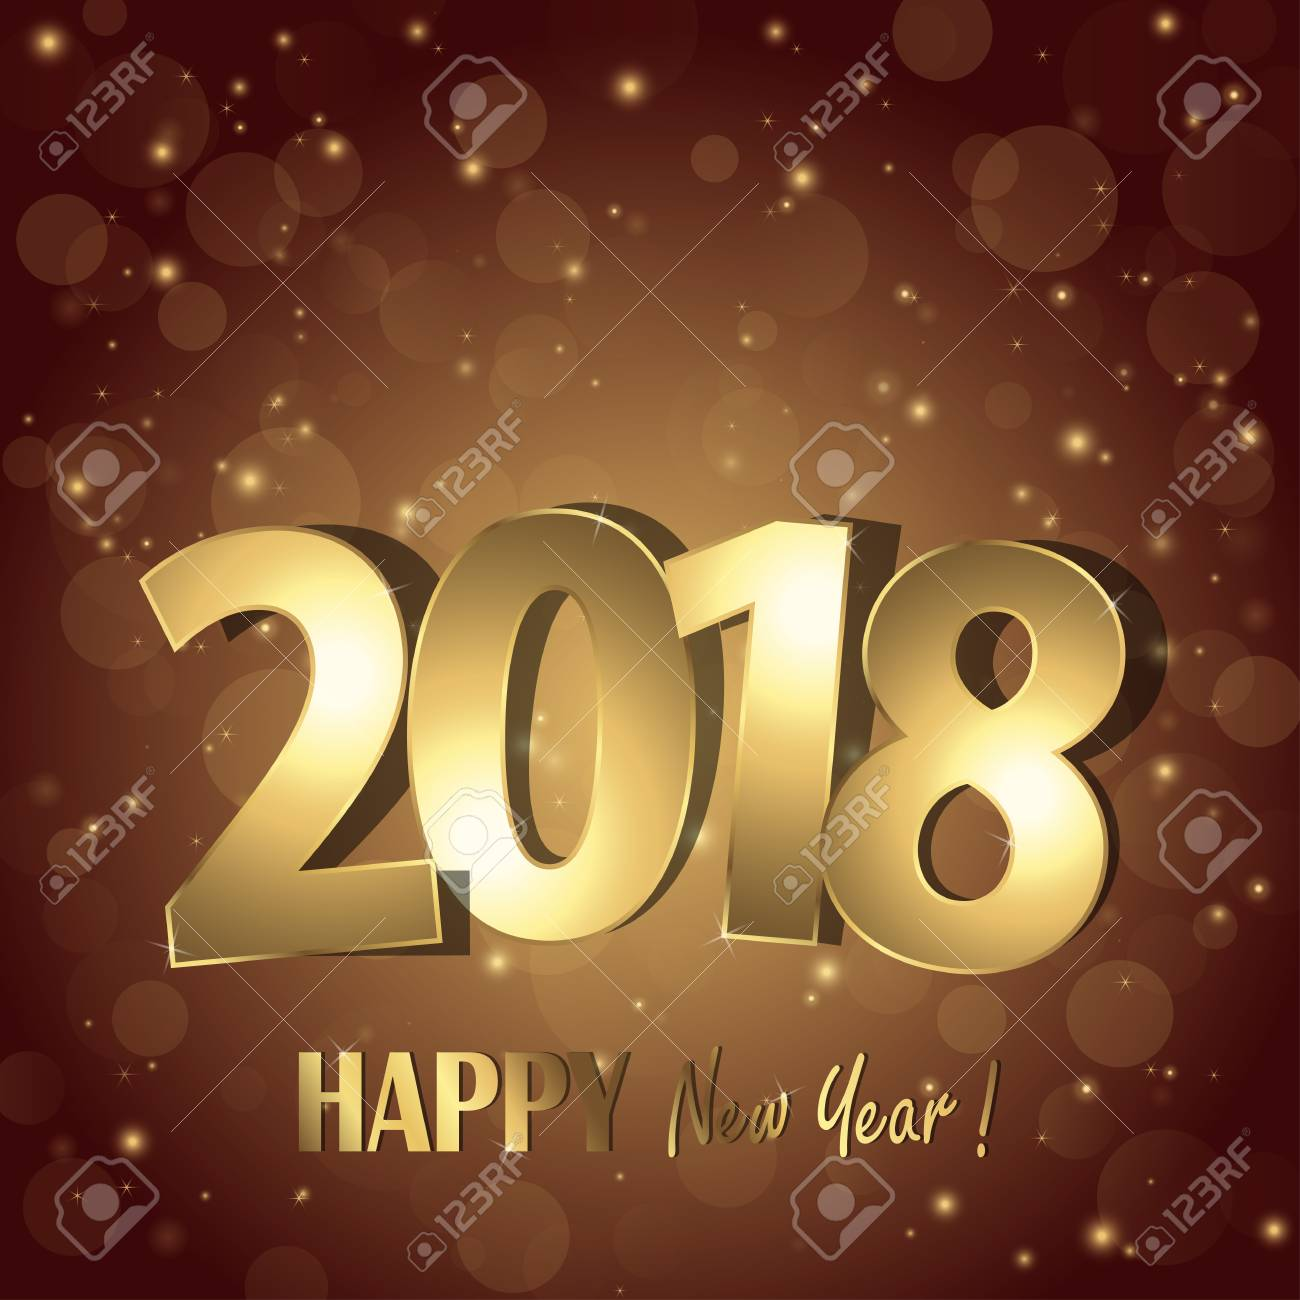 happy new year 2018 greetings with golden numbers and brown background stock vector 89990683